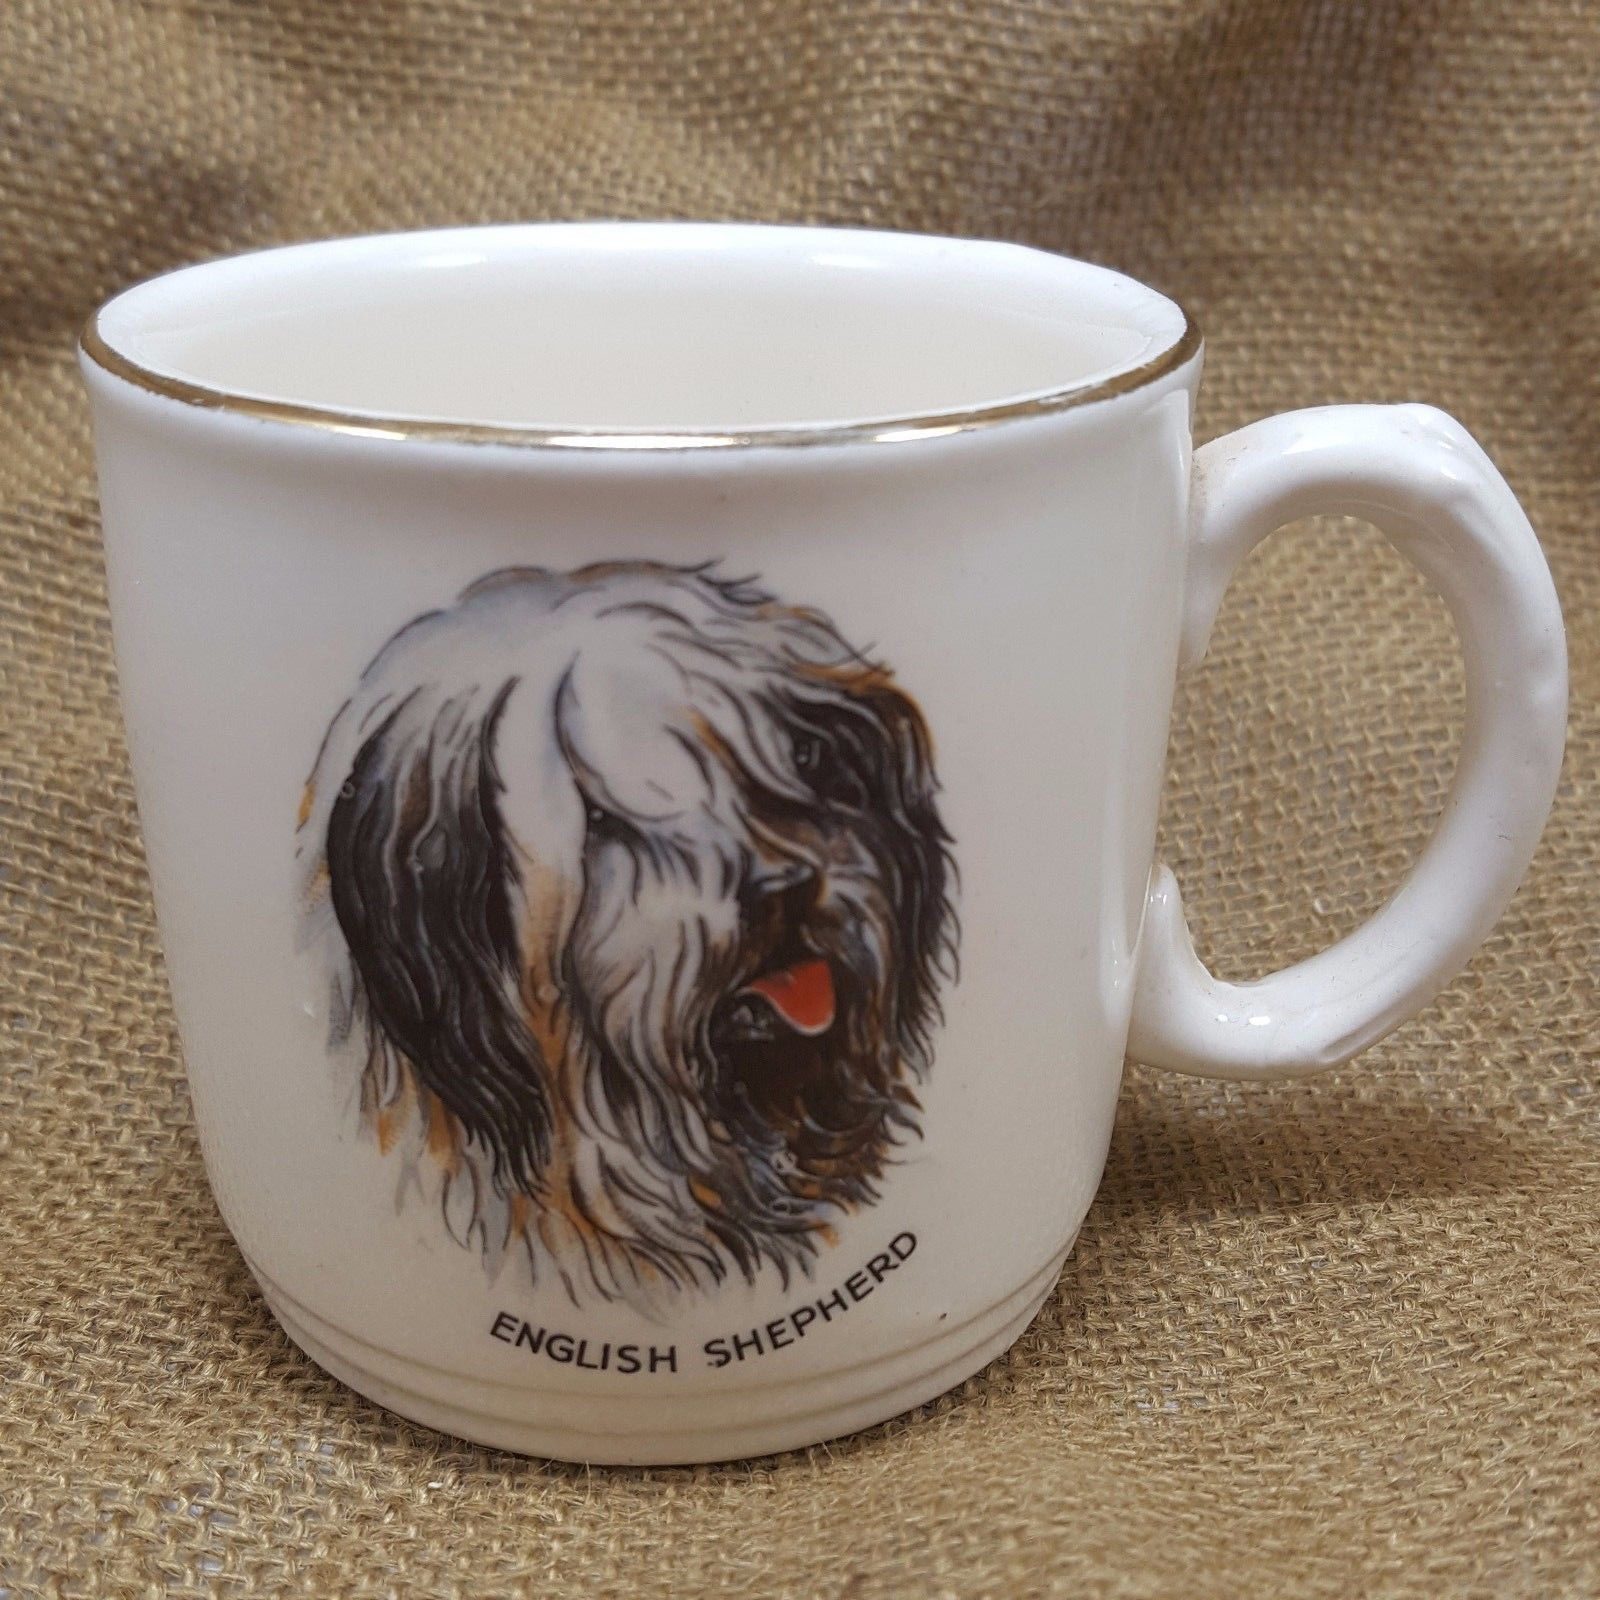 Vtg Old English Sheepdog Coffee Mug White Gold Rim England Shaggy Shepherd Dog